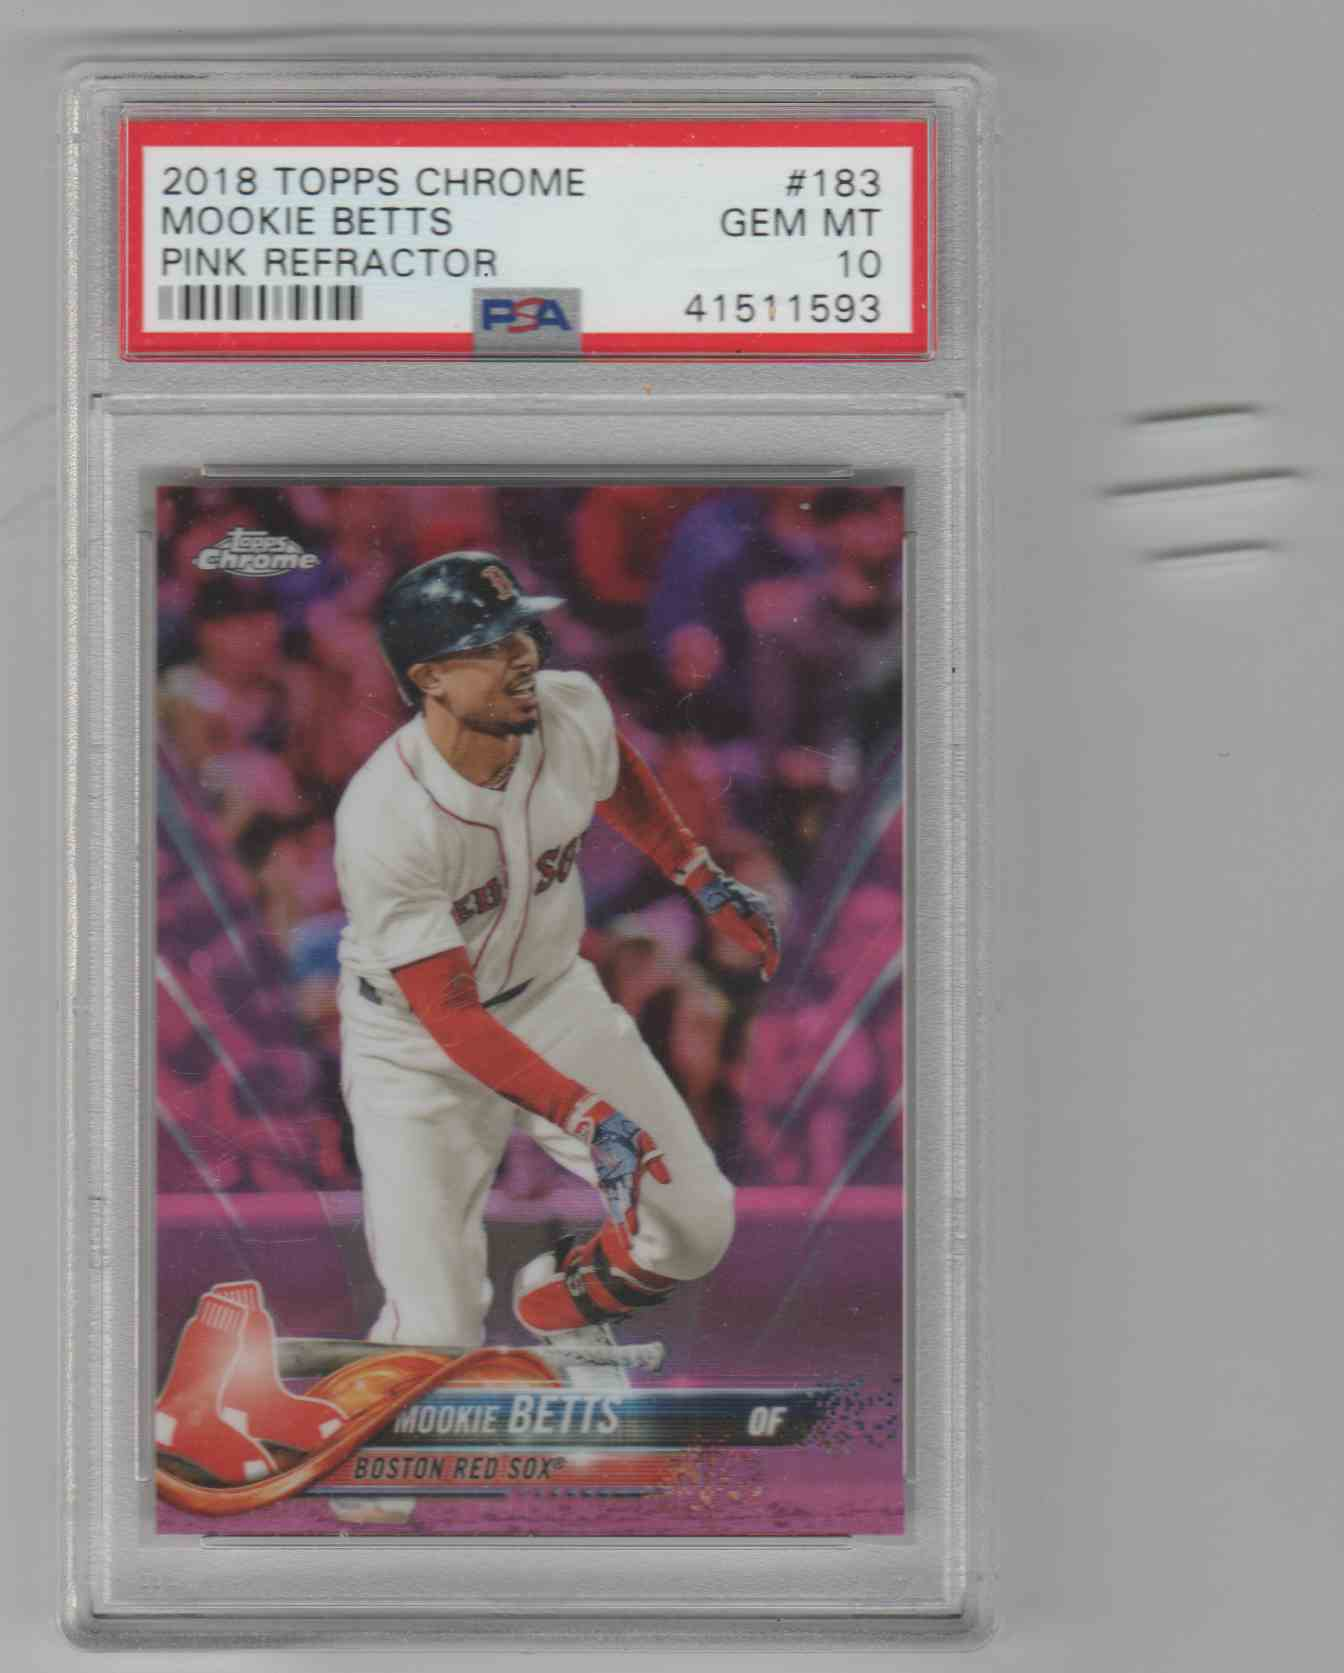 2018 Topps Chrome Pink Refractor Mookie Betts #183 card front image